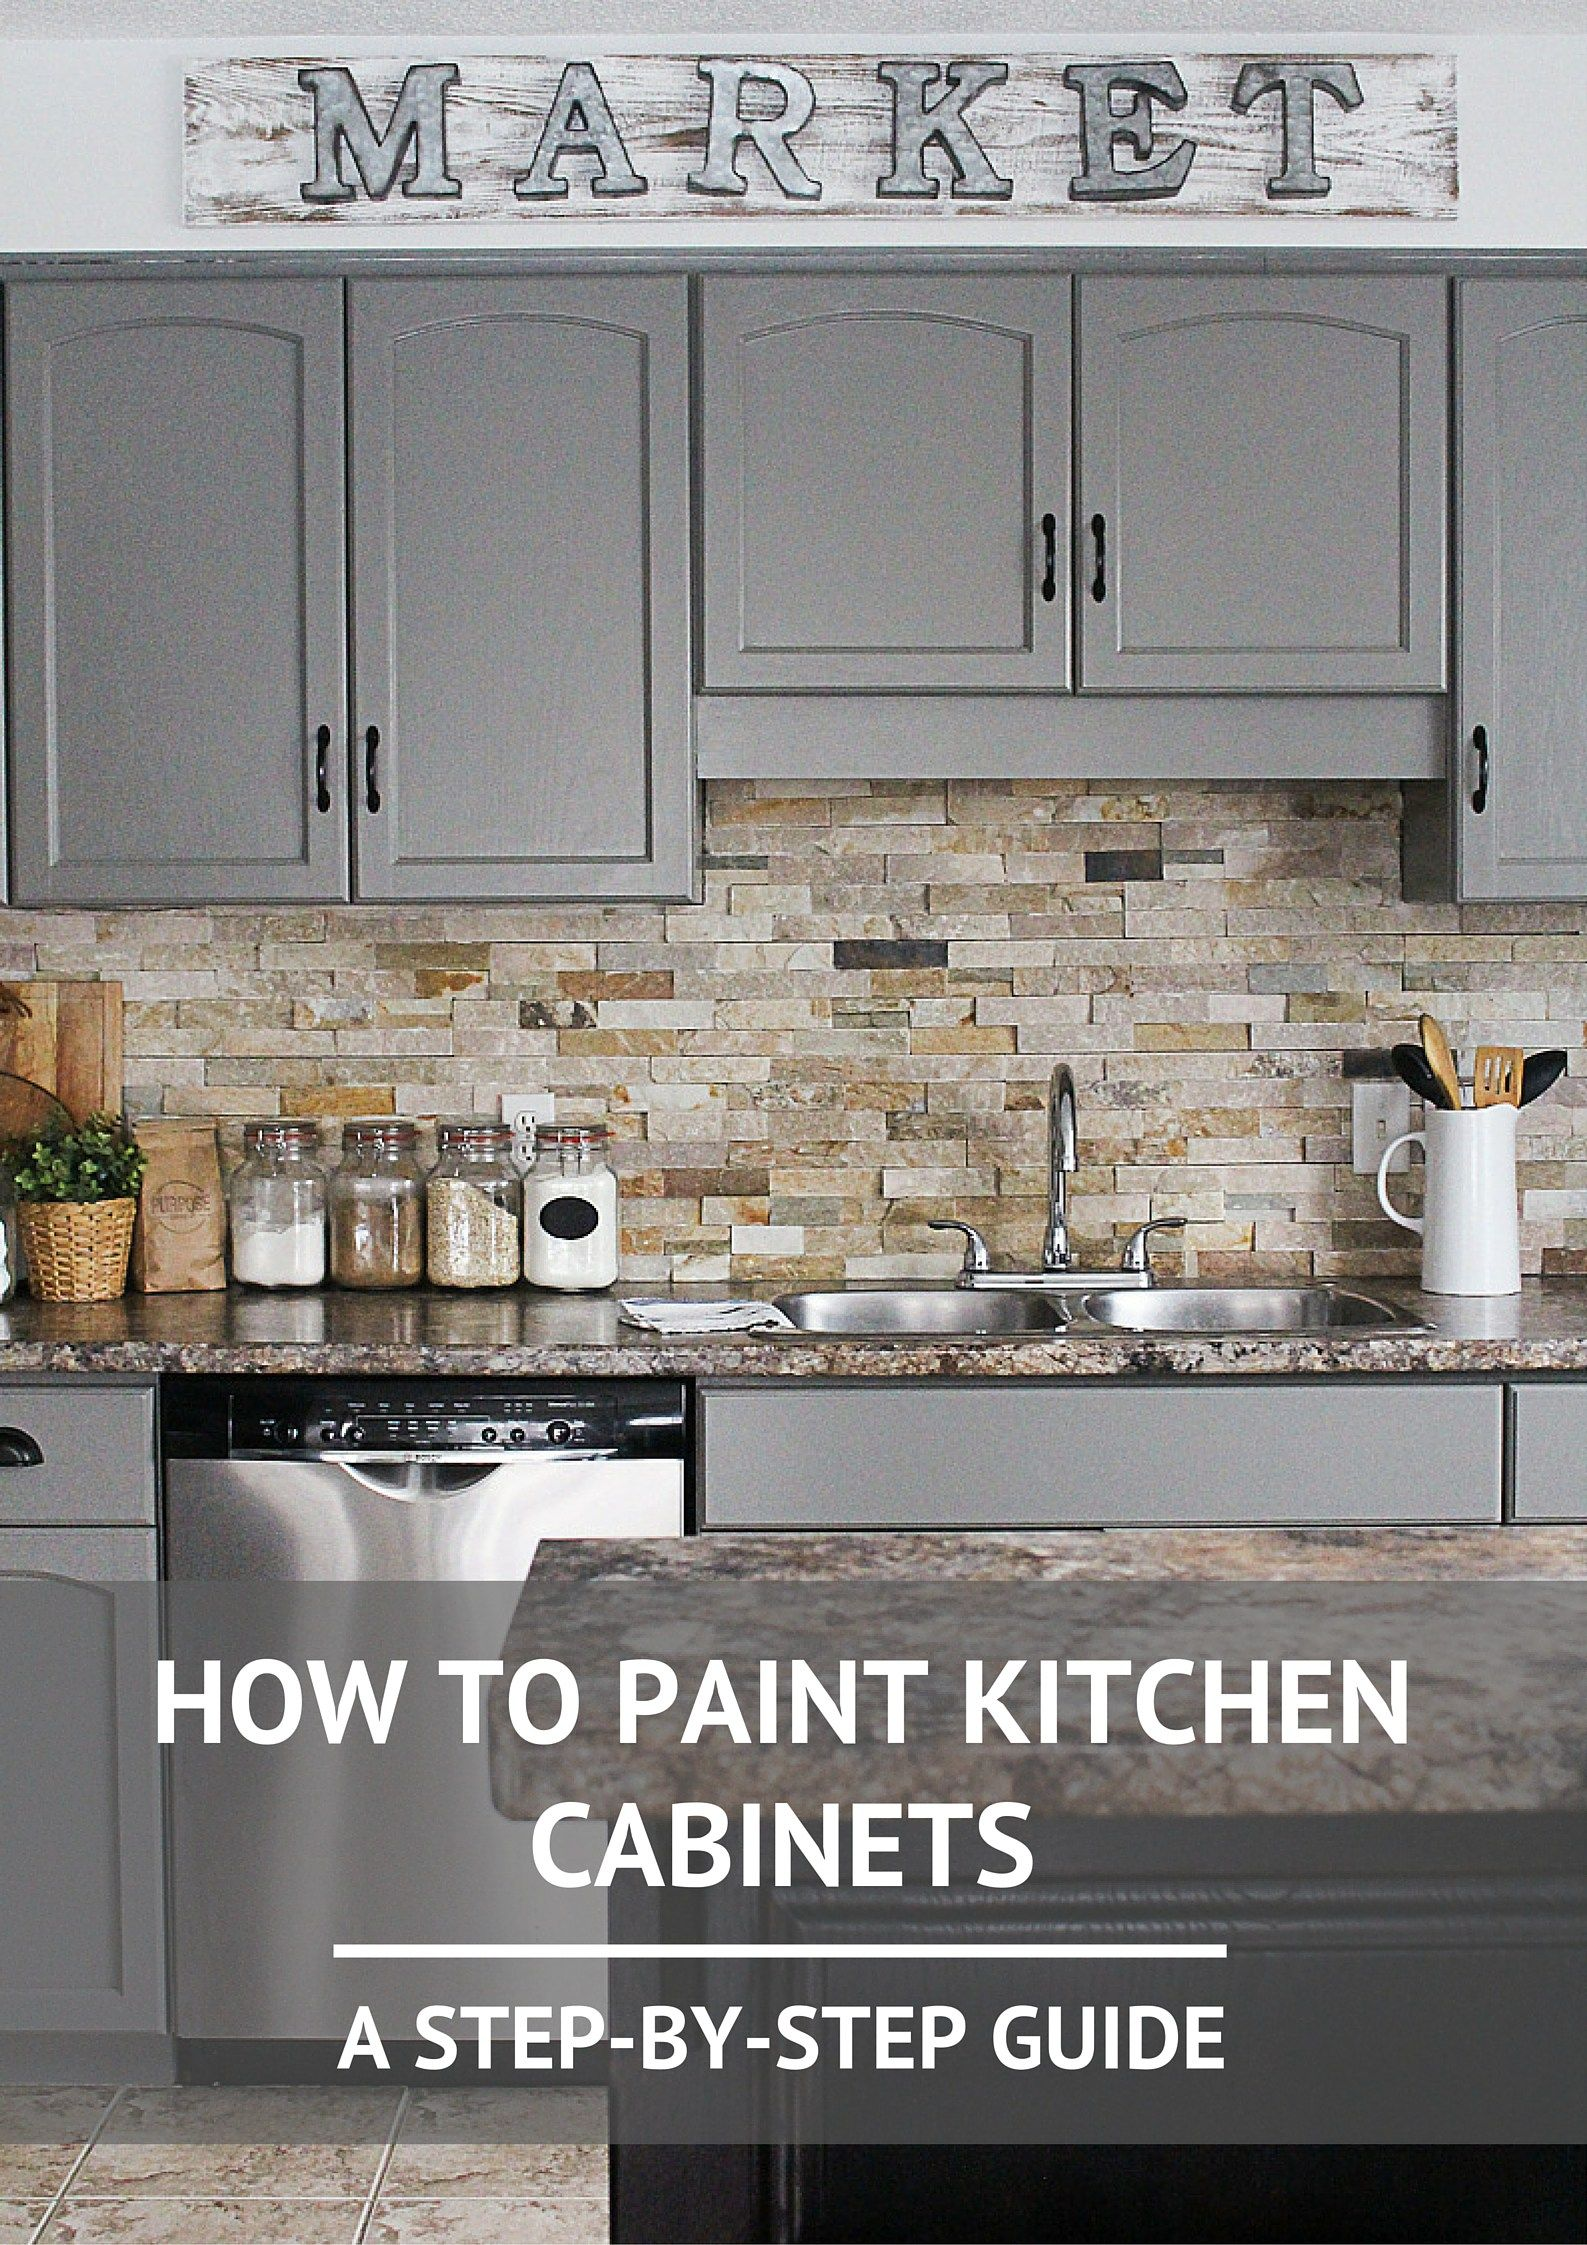 How To Paint Kitchen Cabinets Ideas For My Home Pinterest - Grey and white painted kitchen cabinets